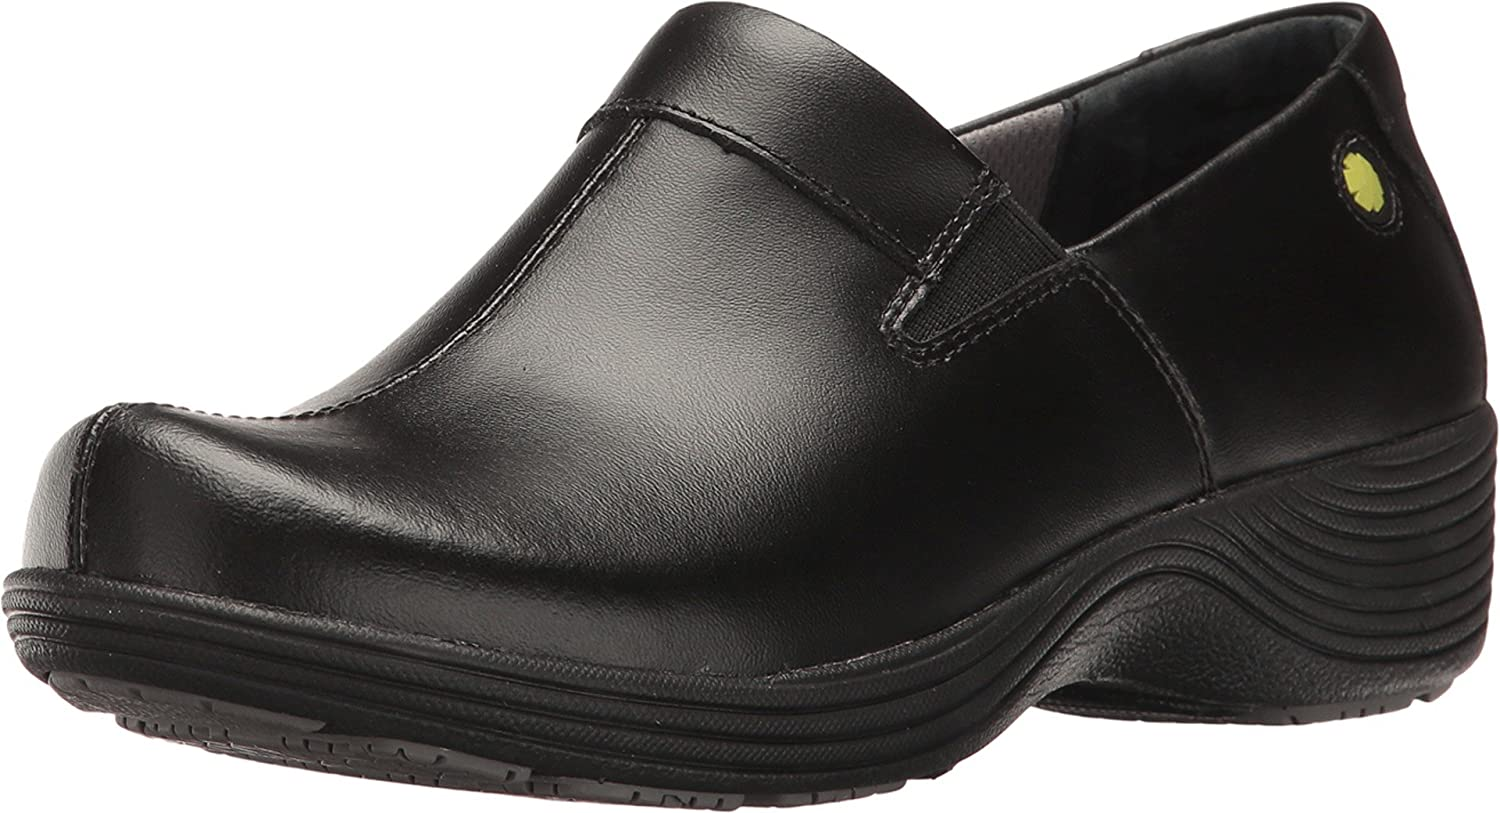 Ladies Black Patent Comfy Casual Hospital Work School Shoes Slip On Mules Sizes